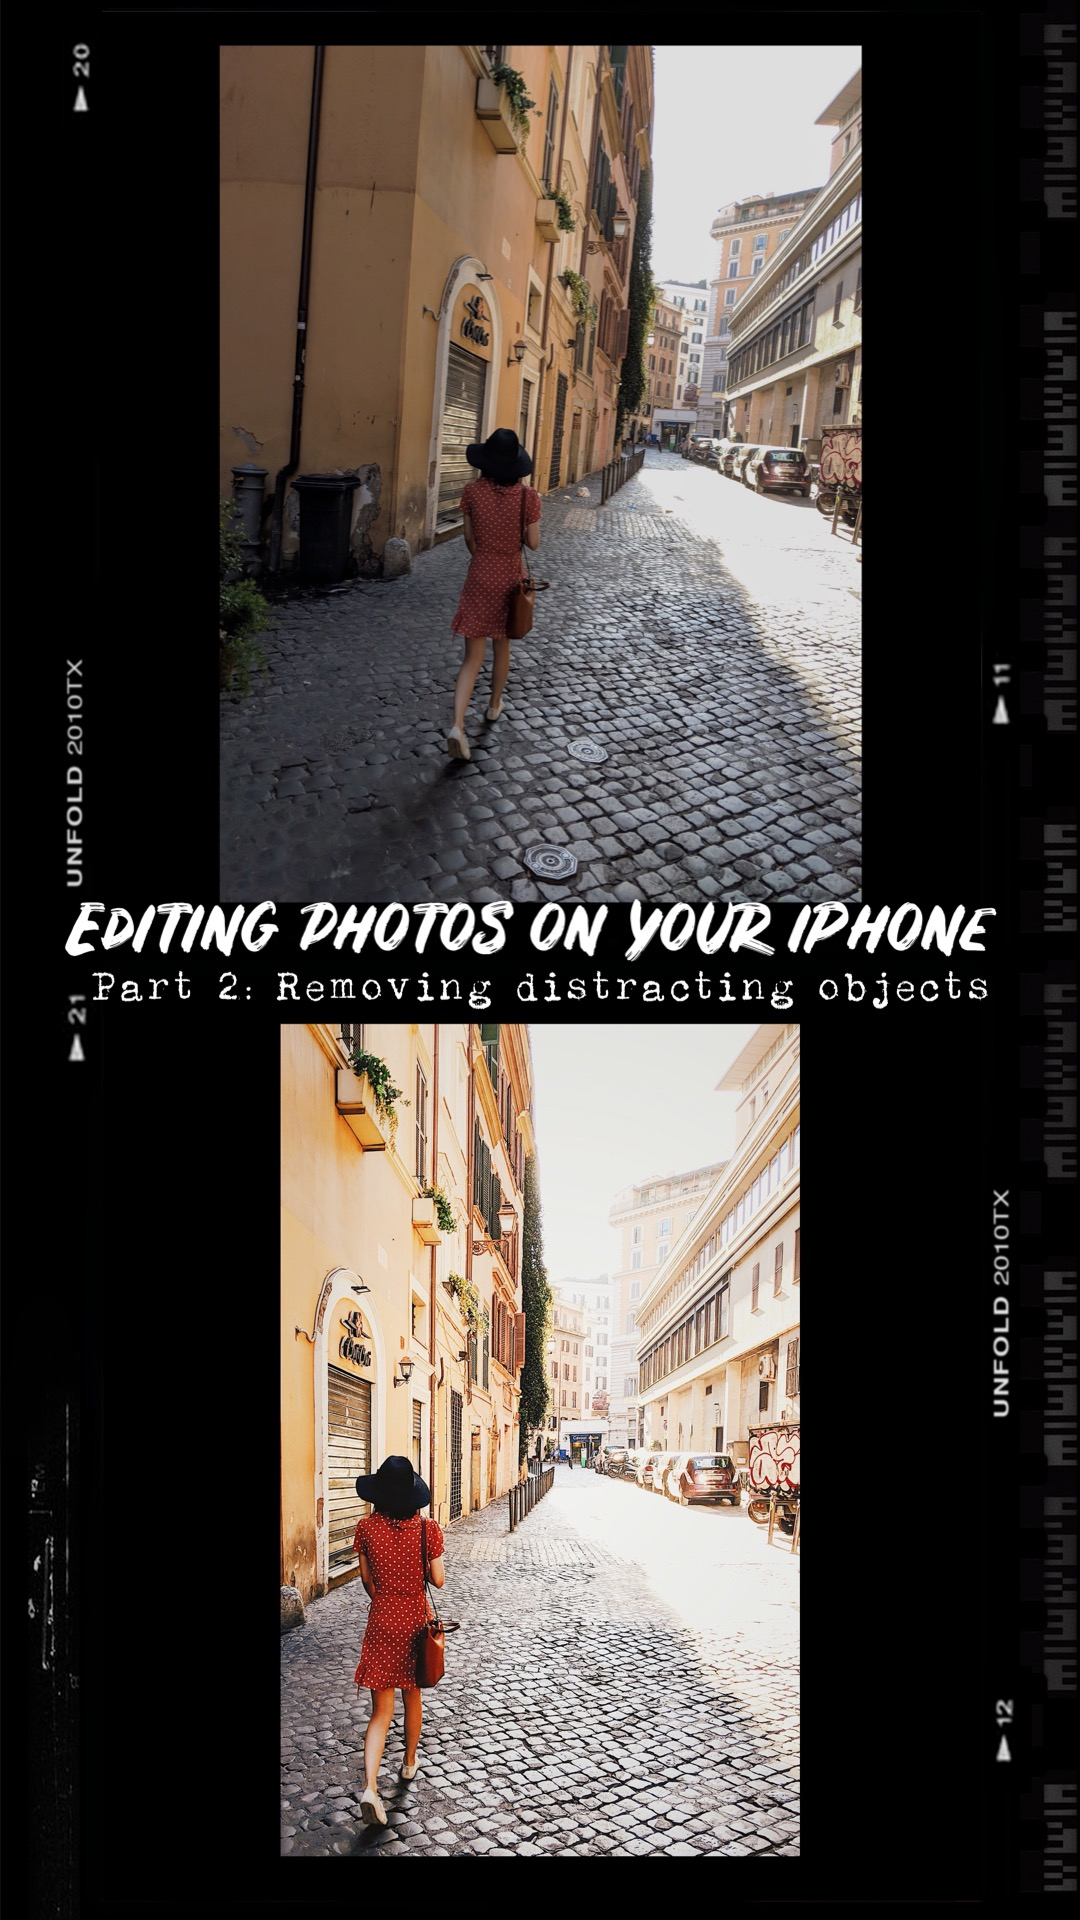 Editing photos on your iPhone — Part 2: Removing distracting objects in travel photos